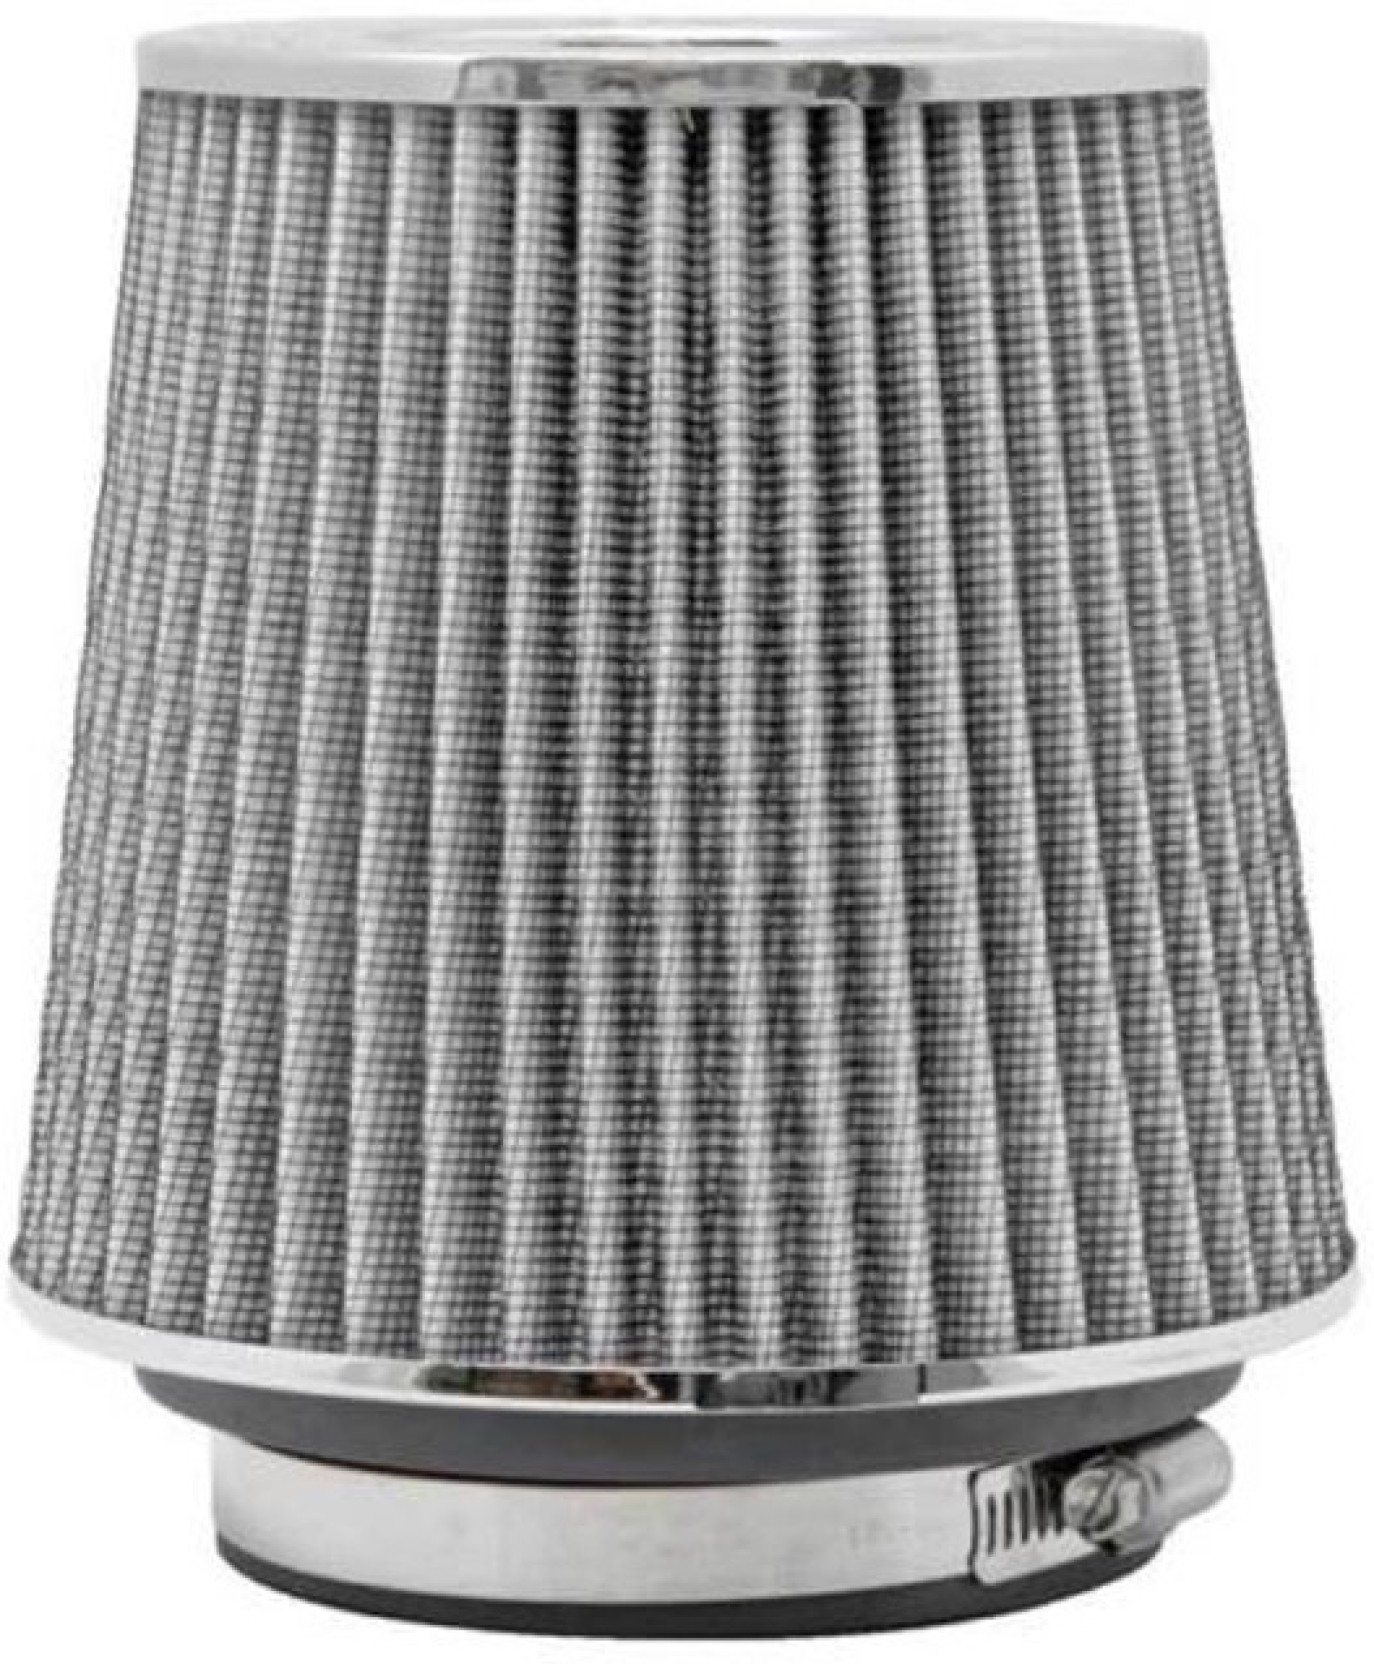 Fuji Silver 3 75mm Car Suv High Flow Short Ram Cold Air Intake Vent Fuel Filters Home